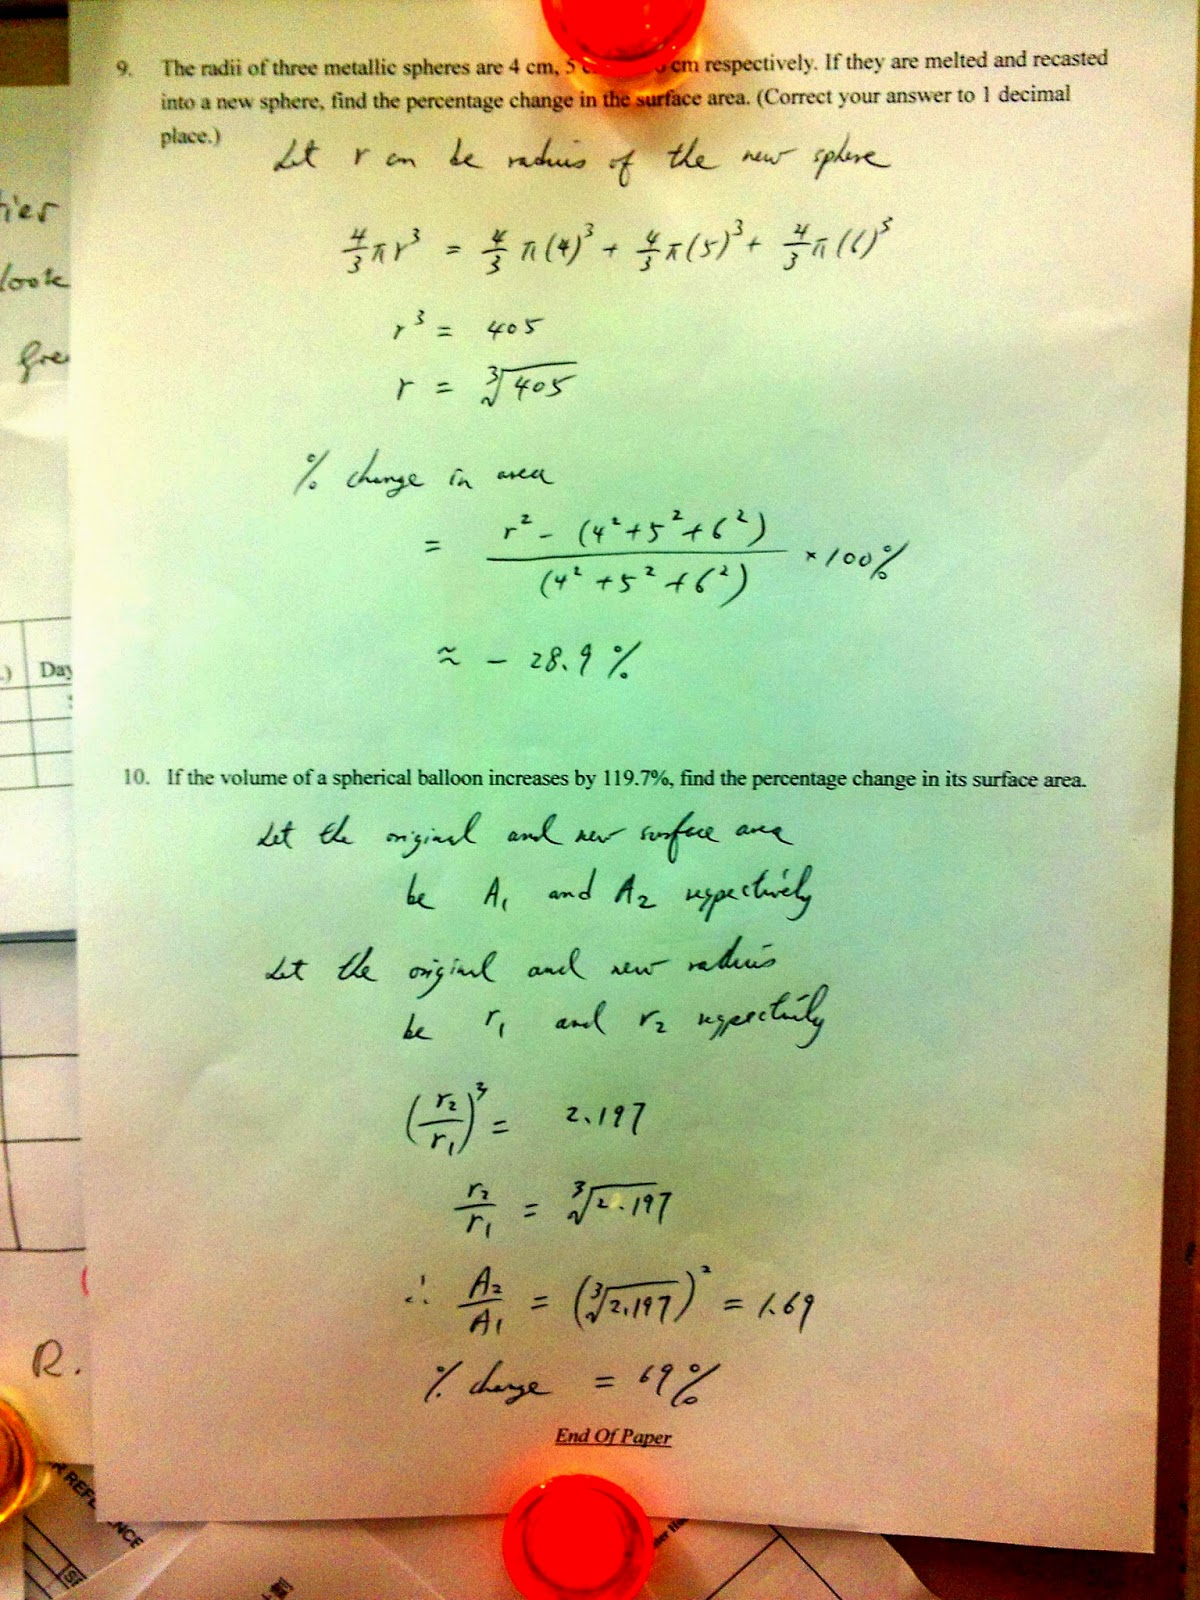 ch 3 solution Programming exercise solutions source code for examples download software videonotes chapter 1 introduction to computers, programming, and c++ chapter 2 elementary programming chapter 3 selections chapter 4 mathematical functions, characters, and strings chapter 5 loops chapter 6.